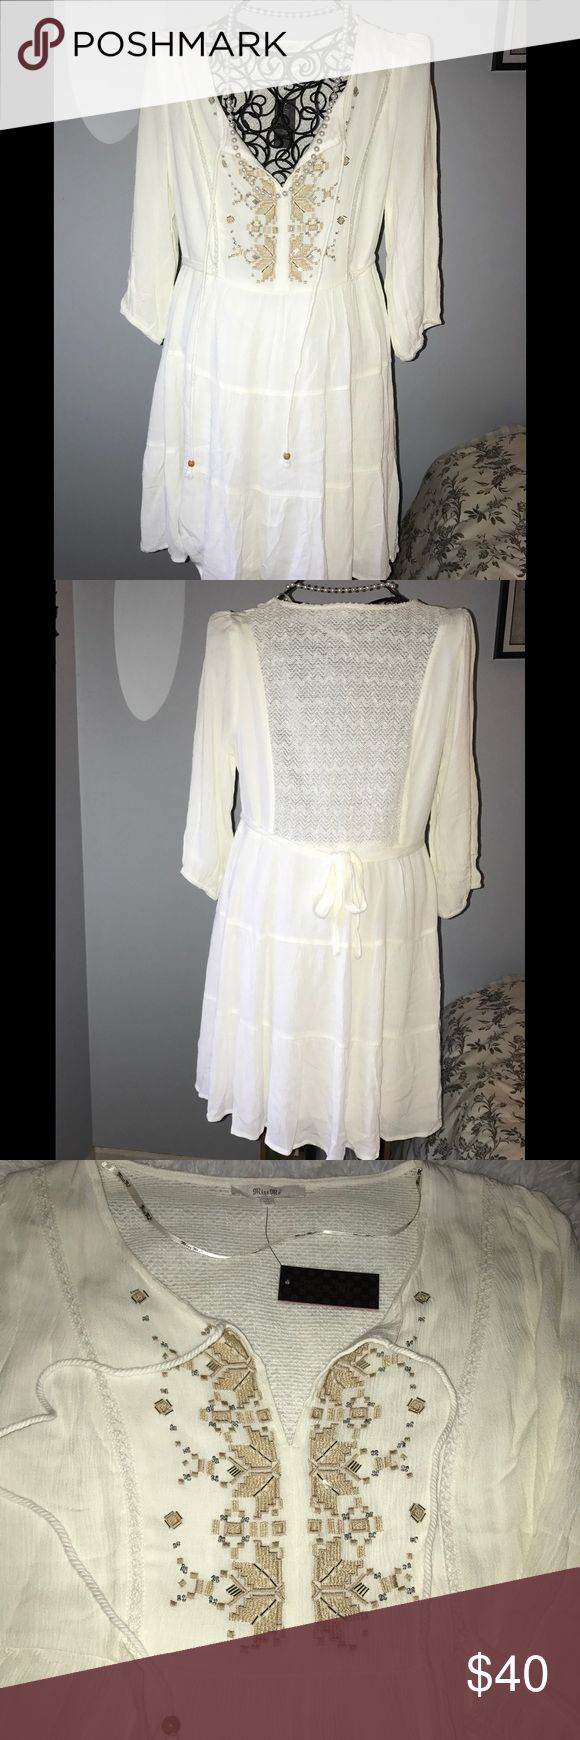 New Miss Me sequin embellished Boho Festival dress Super cute, Brand New Miss Me gauze Boho peasant dress. Features metallic gold Embroidered on the chest and silver beading. The back is crocheted with sequin detail throughout! Fully lined. Size Small. Miss Me Dresses Mini